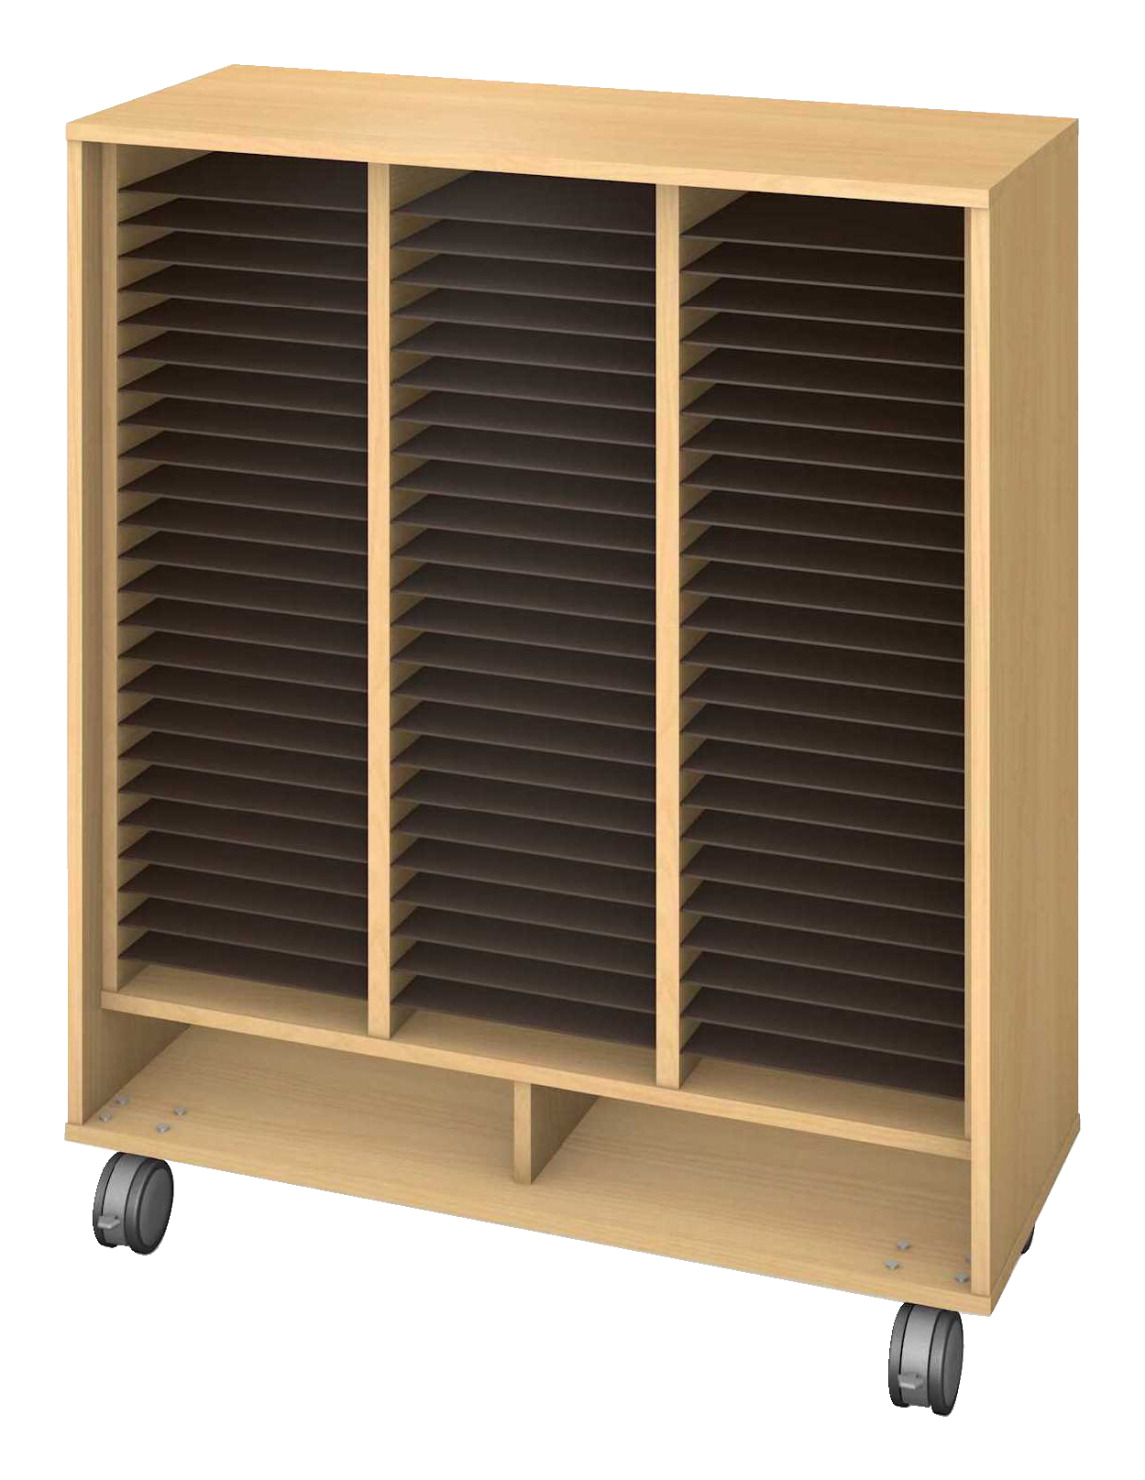 Fleetwood Harmony Mobile Folio Storage, 75 Openings, 42 x 18 x 50 Inches, Fusion Maple